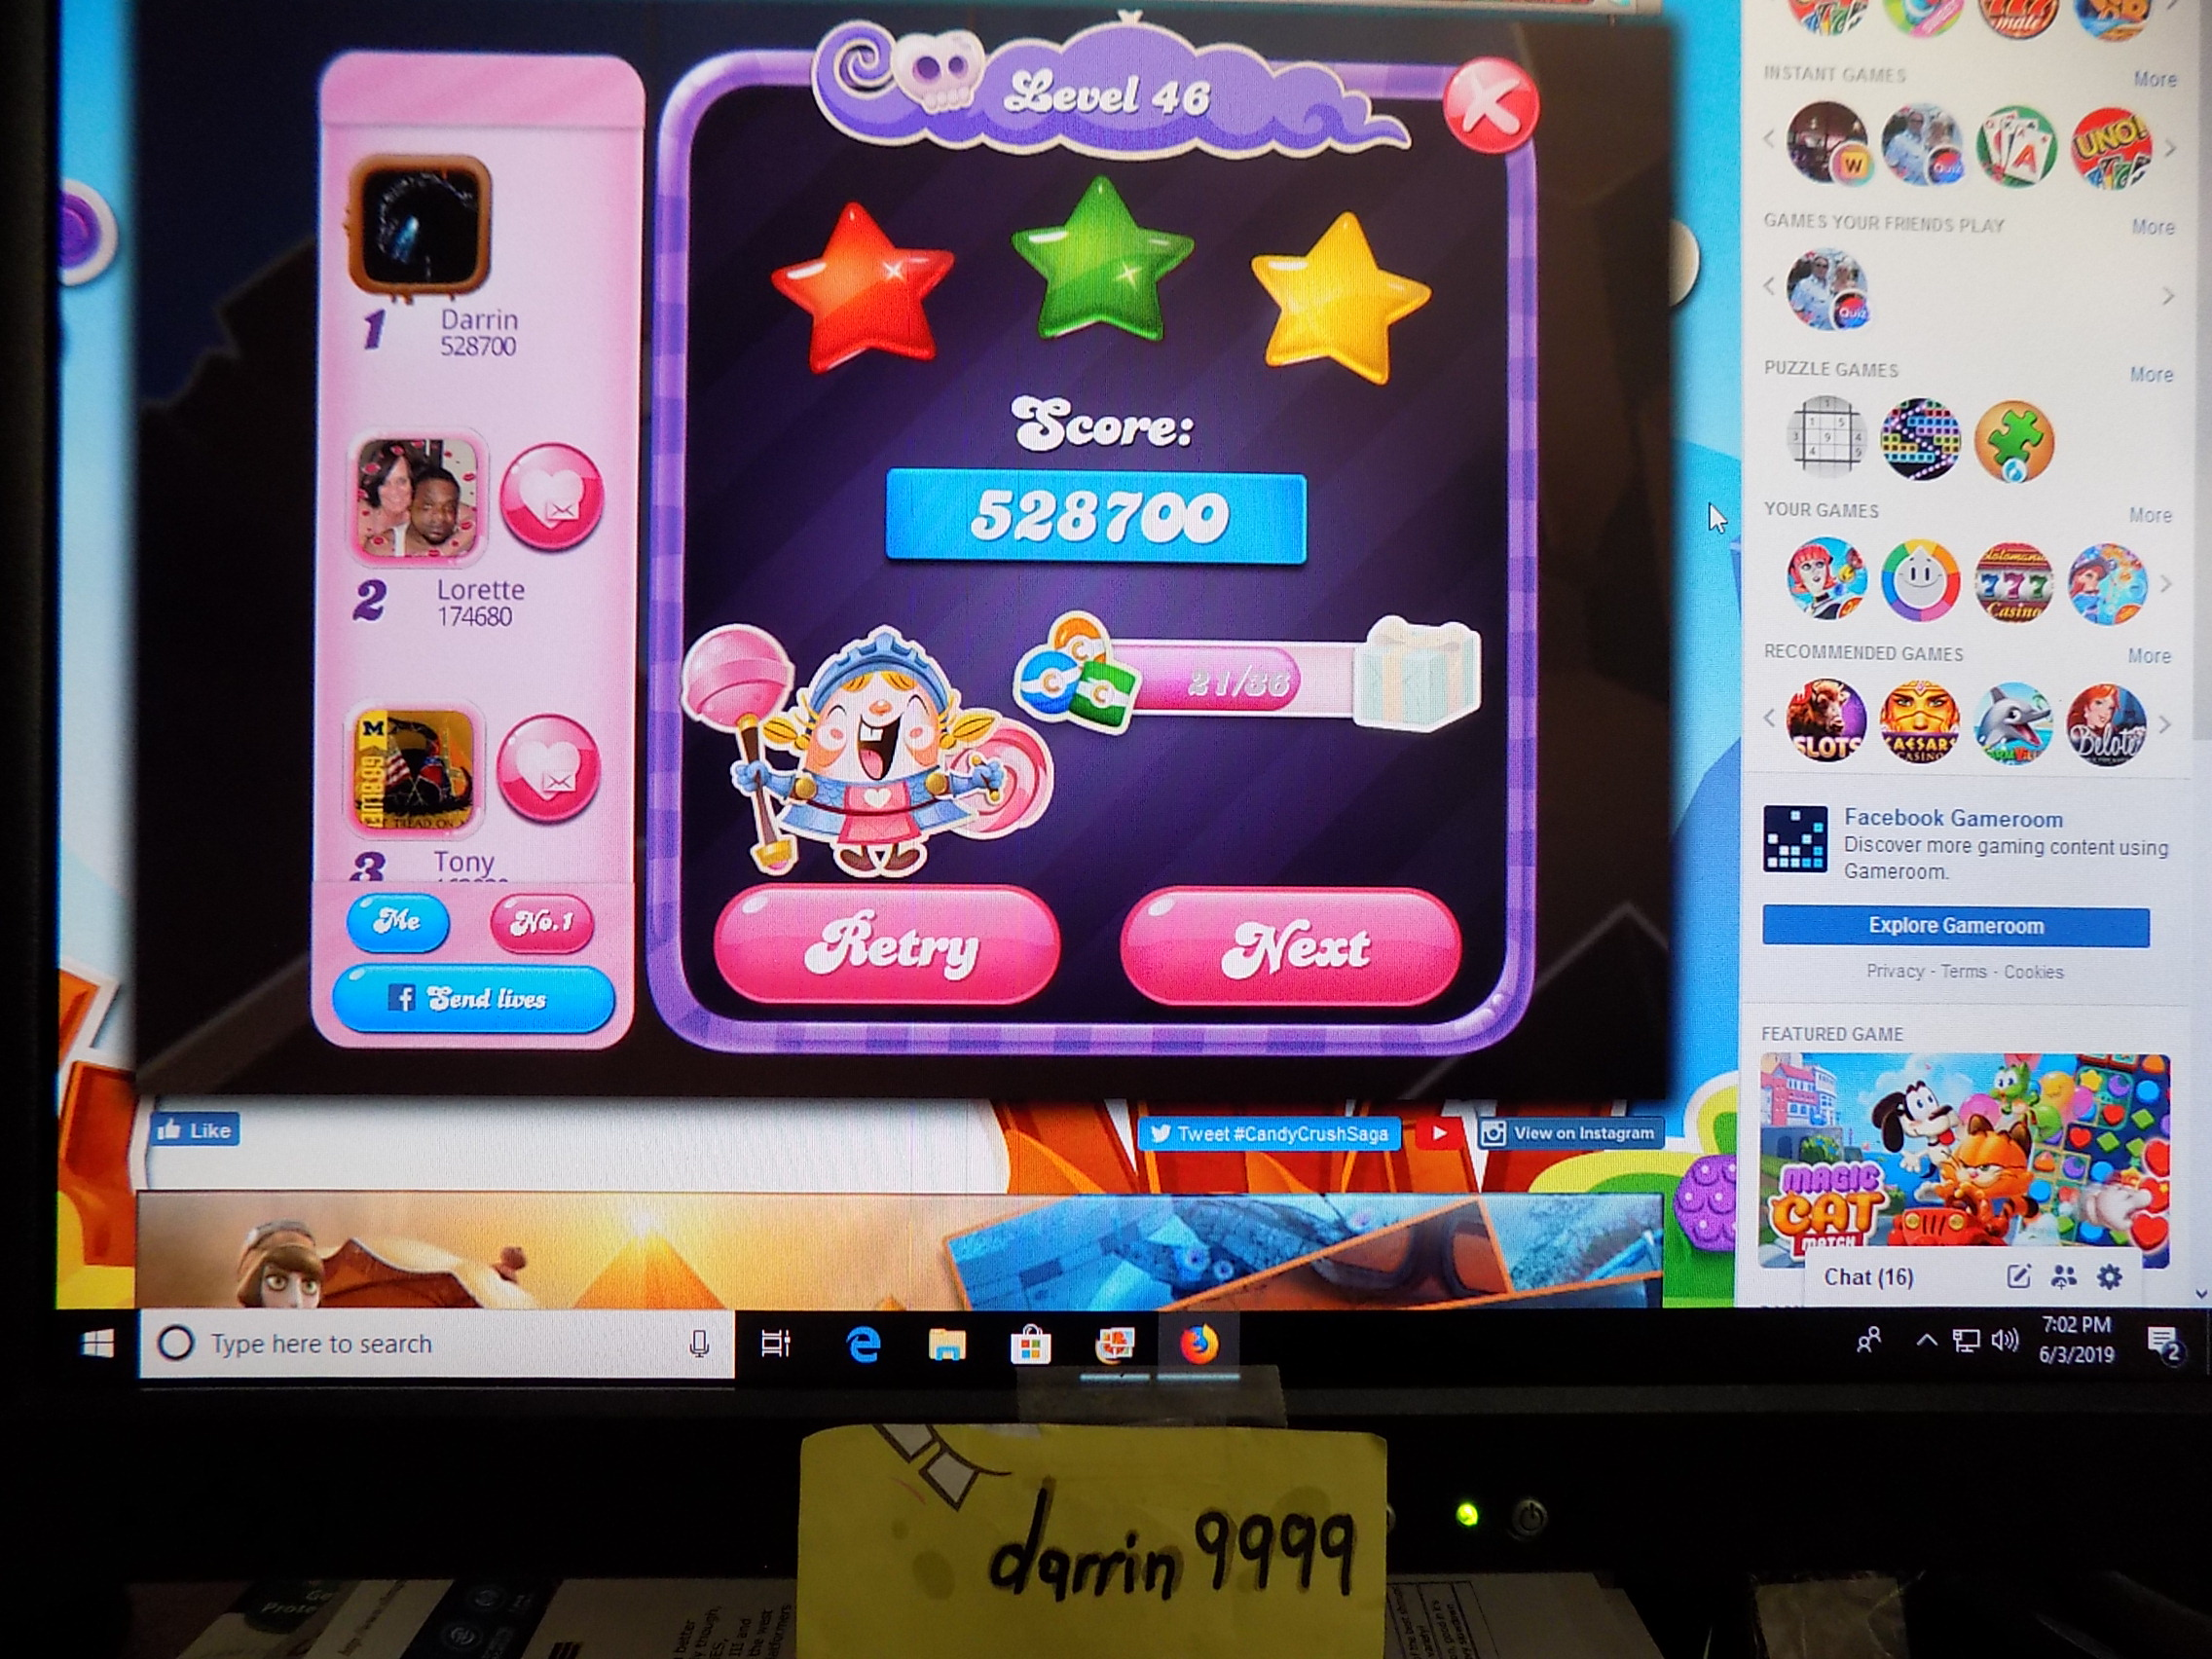 darrin9999: Candy Crush Saga: Level 046 (Web) 528,700 points on 2019-06-05 15:59:37